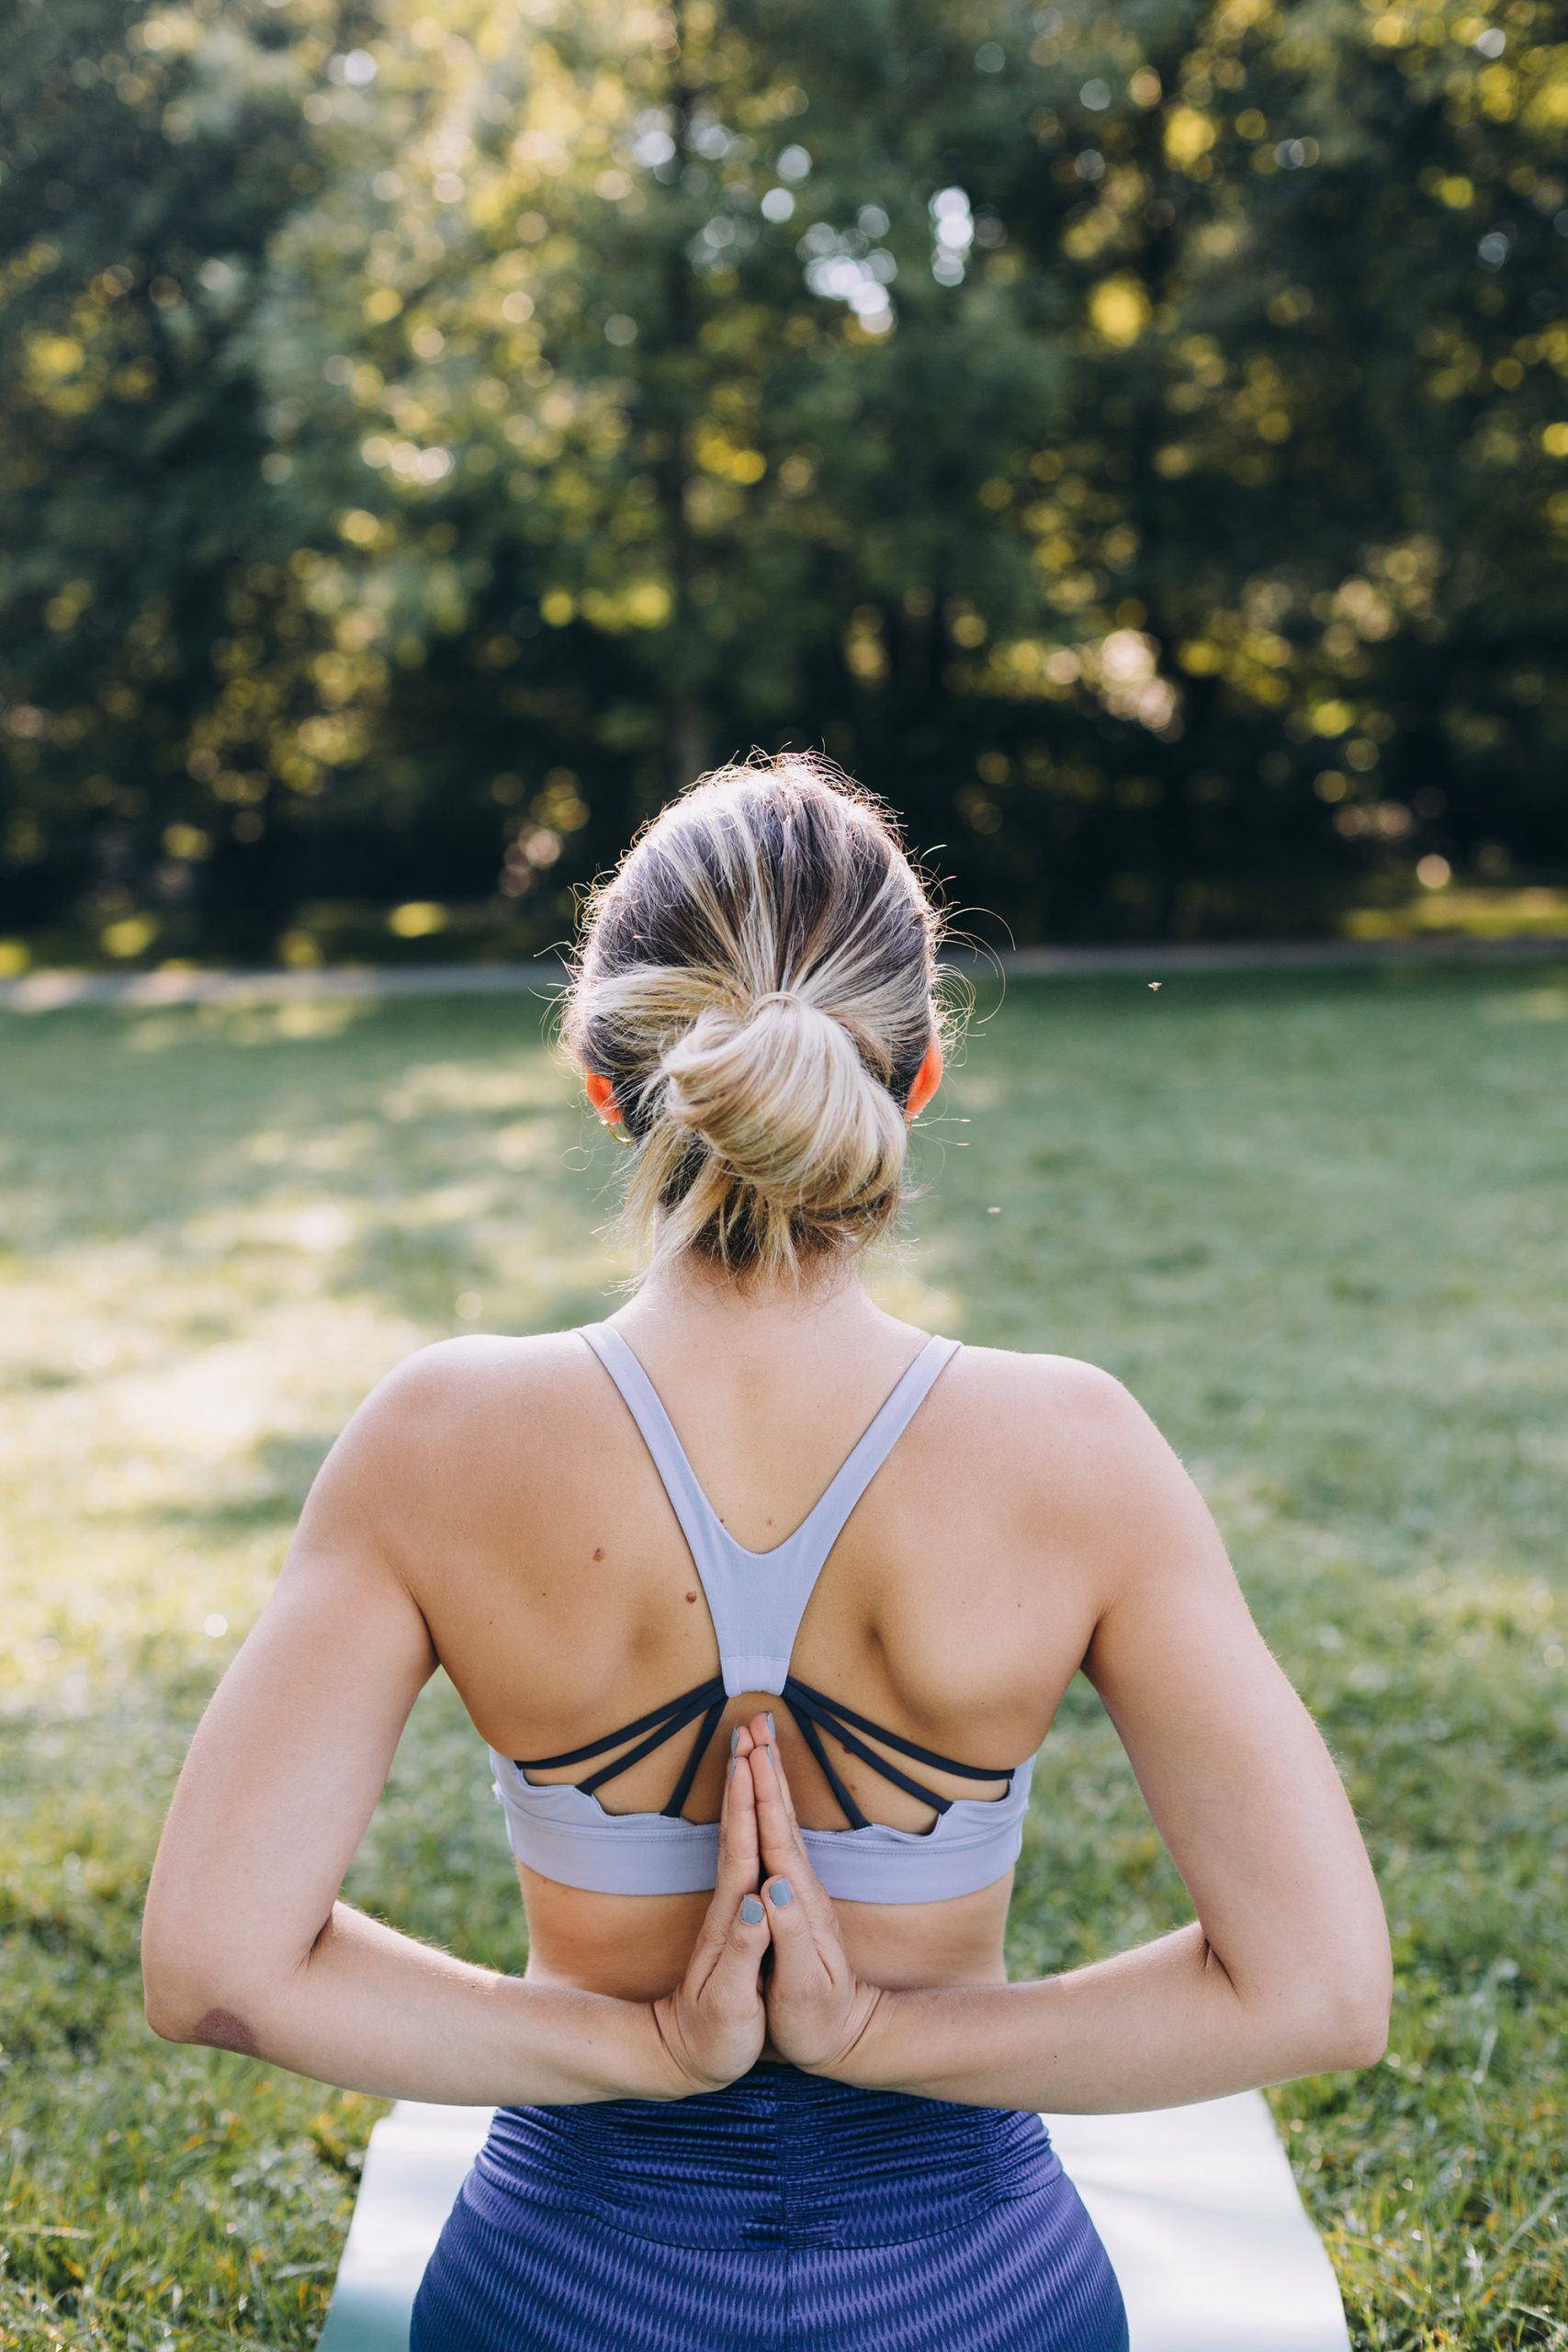 What I hope to gain from going to a Yoga retreat